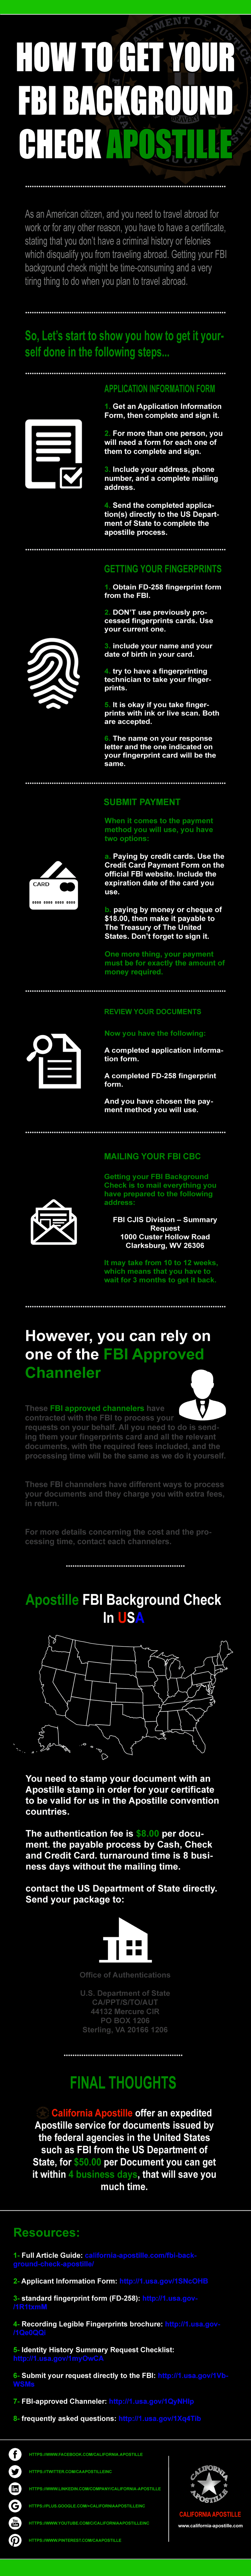 How to get your fbi background check apostille infographic fbi background check apostille falaconquin